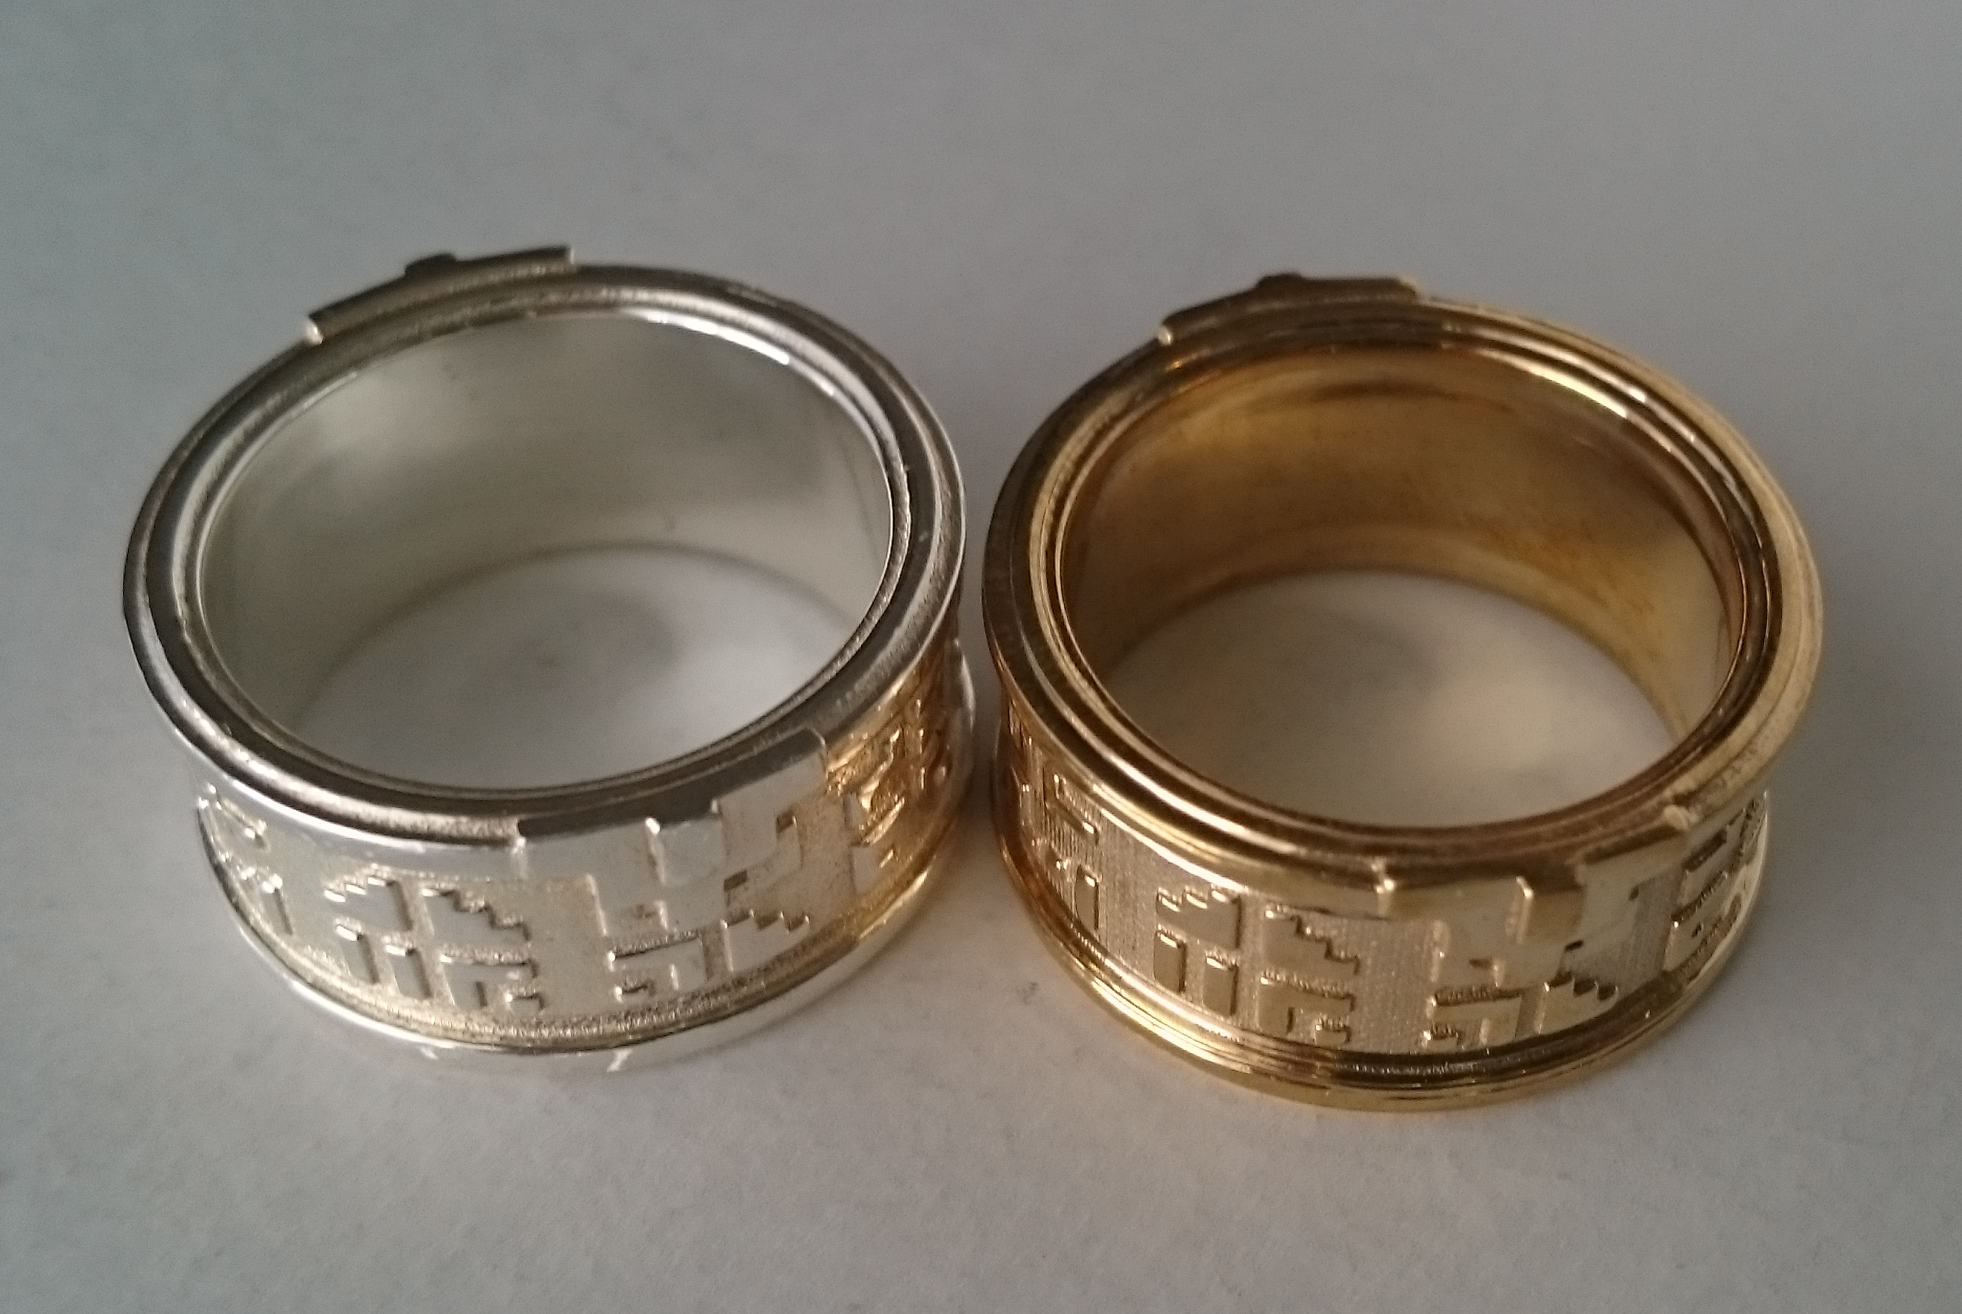 Silver and Bronze ring prints